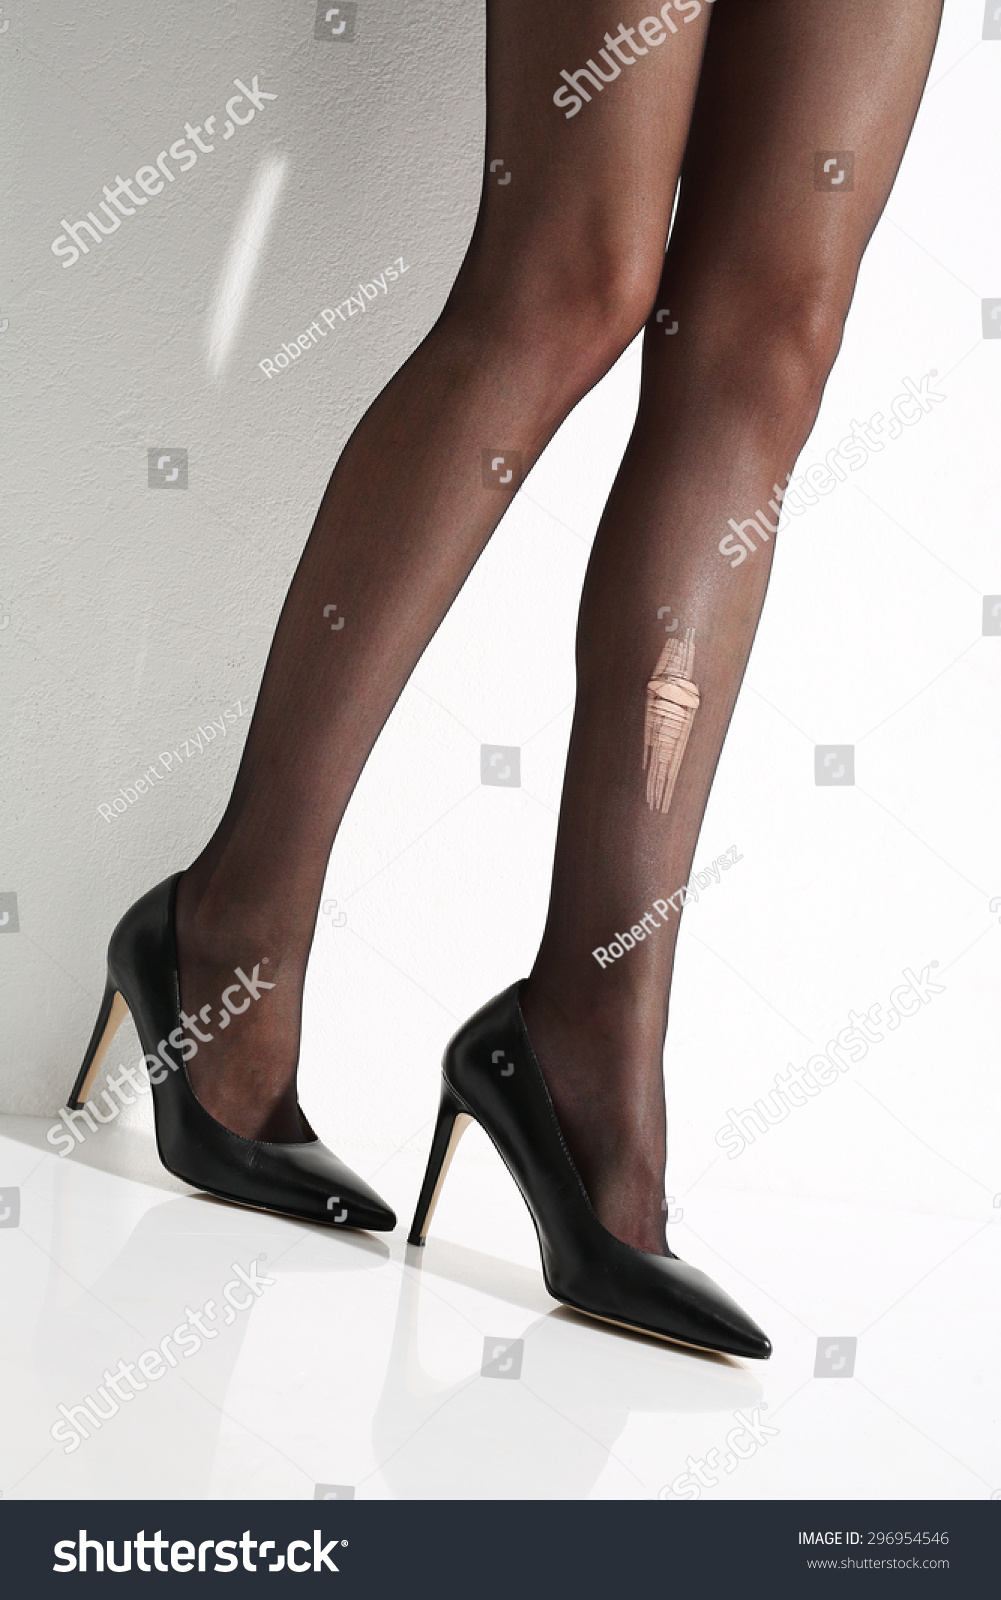 842c95a62 Wink Torn Tights Beautiful Leggy Woman Stock Photo (Edit Now ...